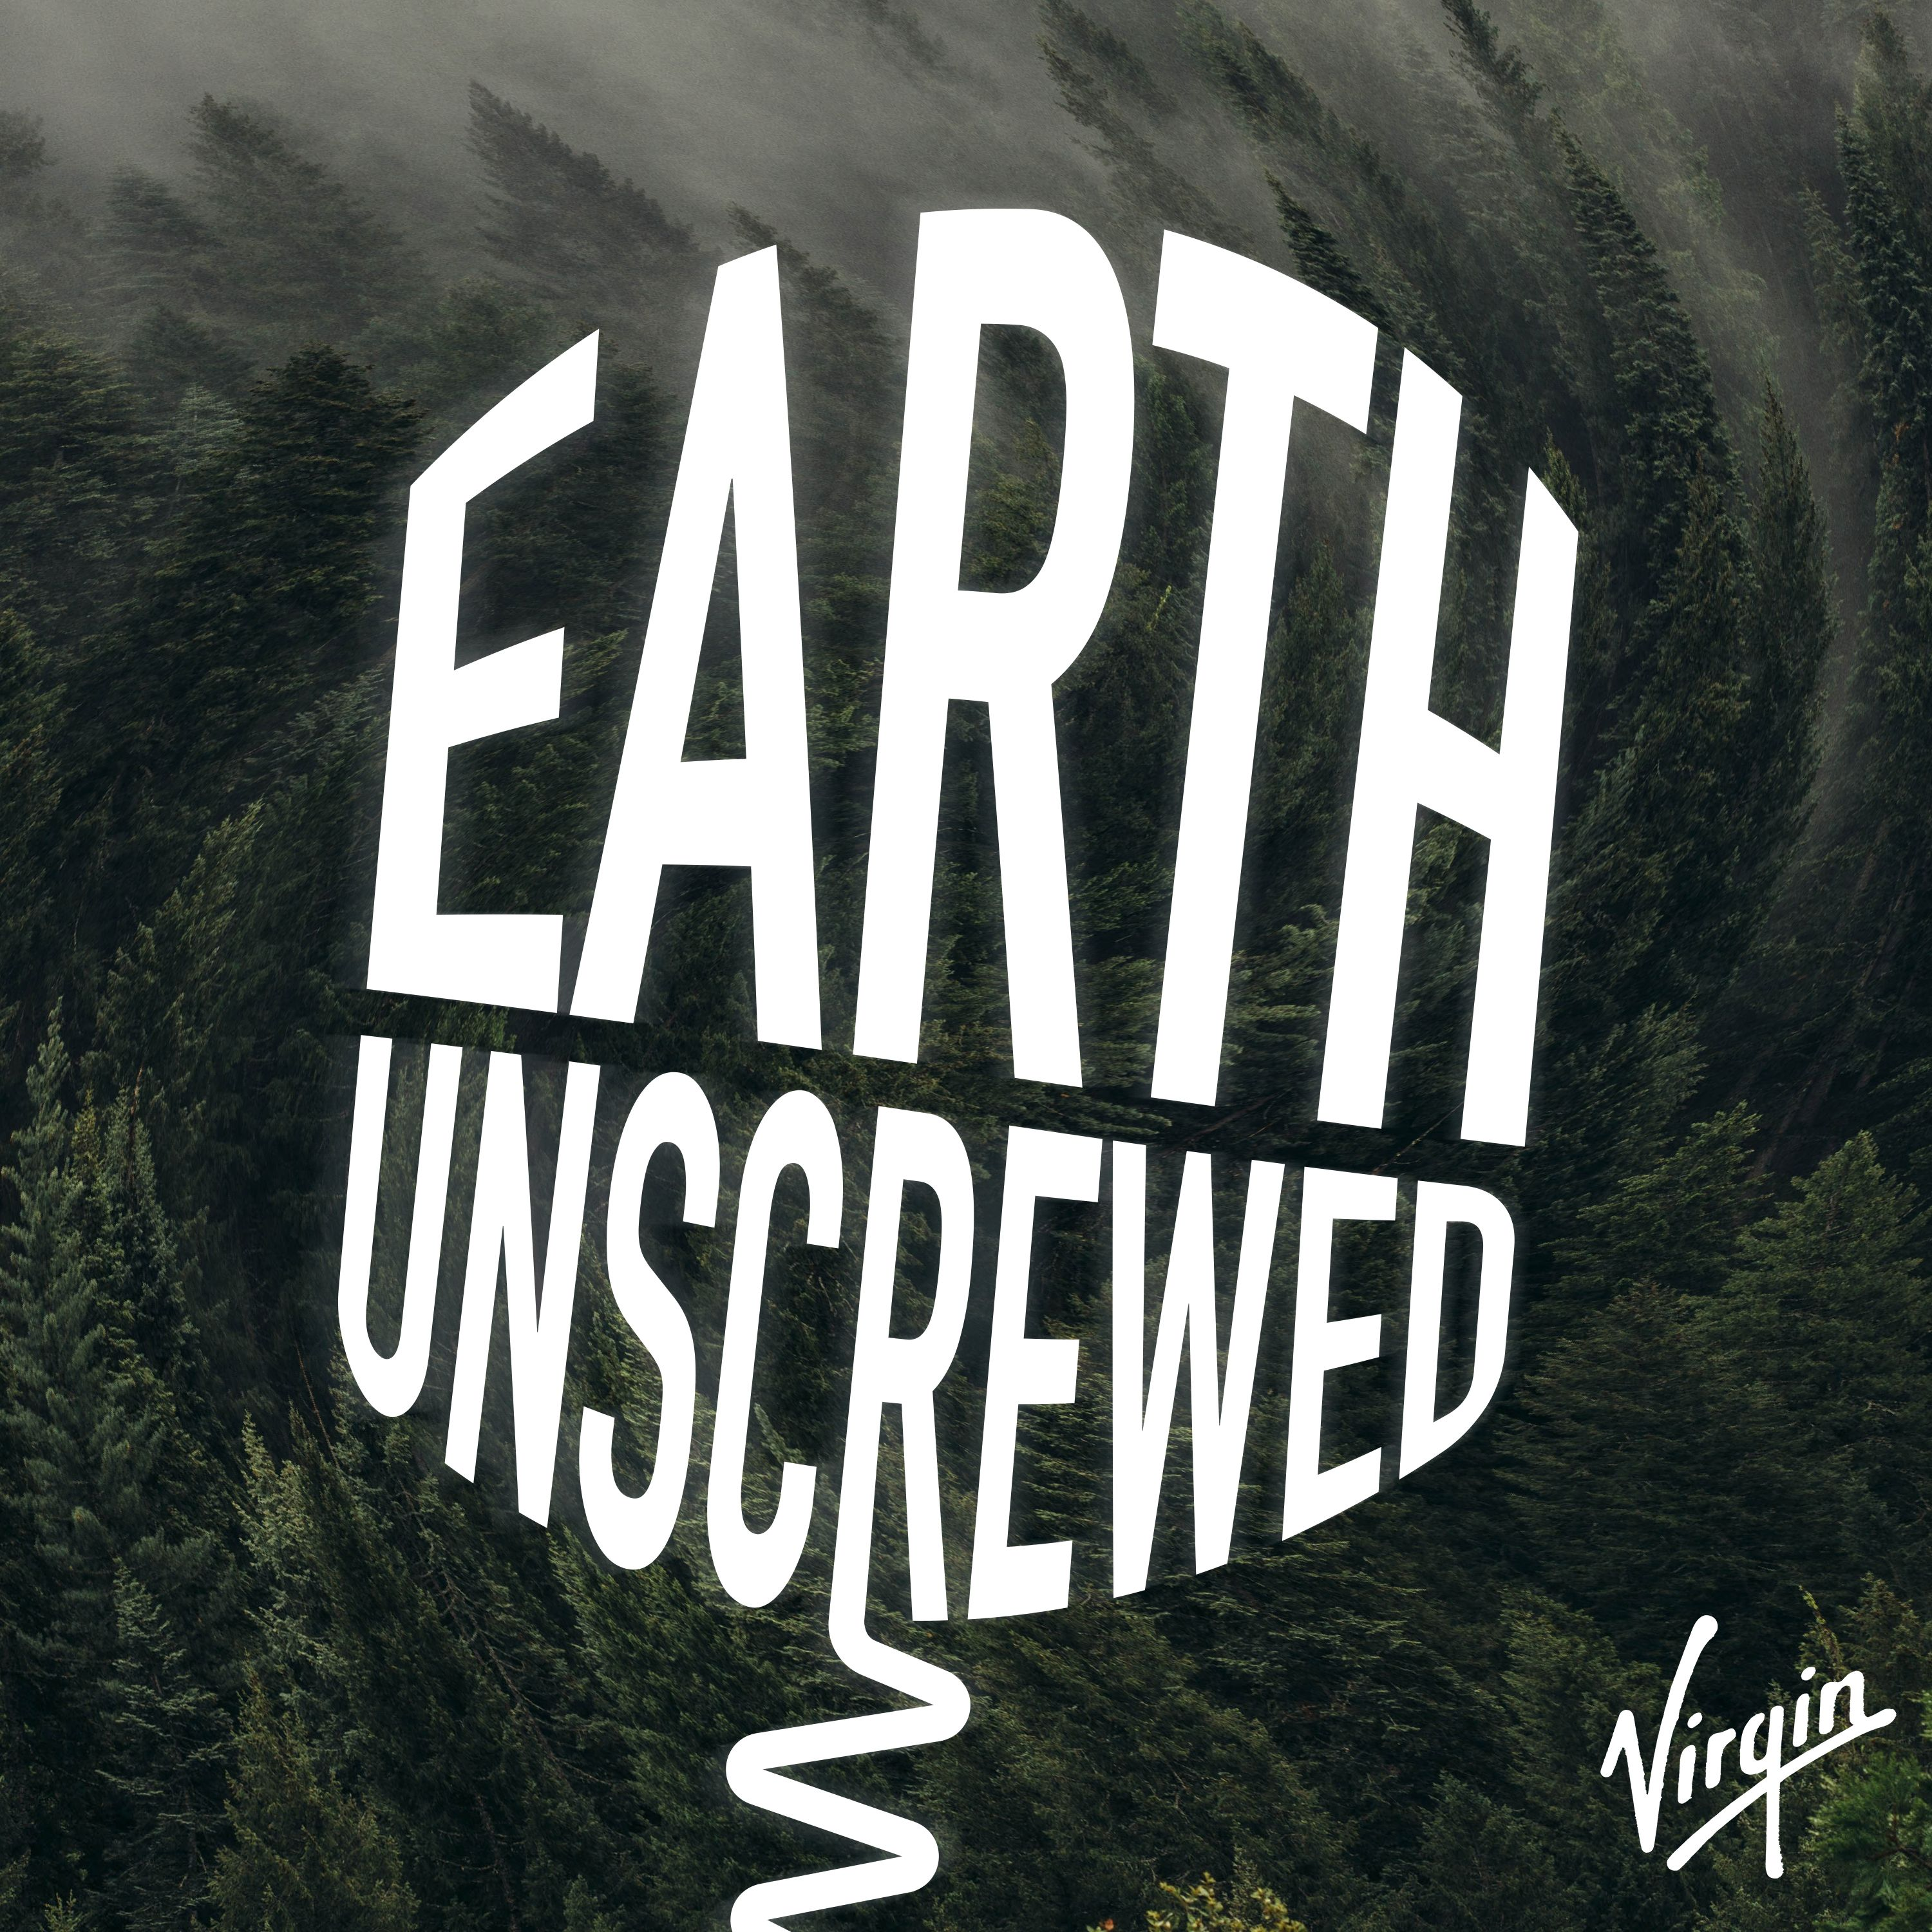 Earth Unscrewed returns on September 26th